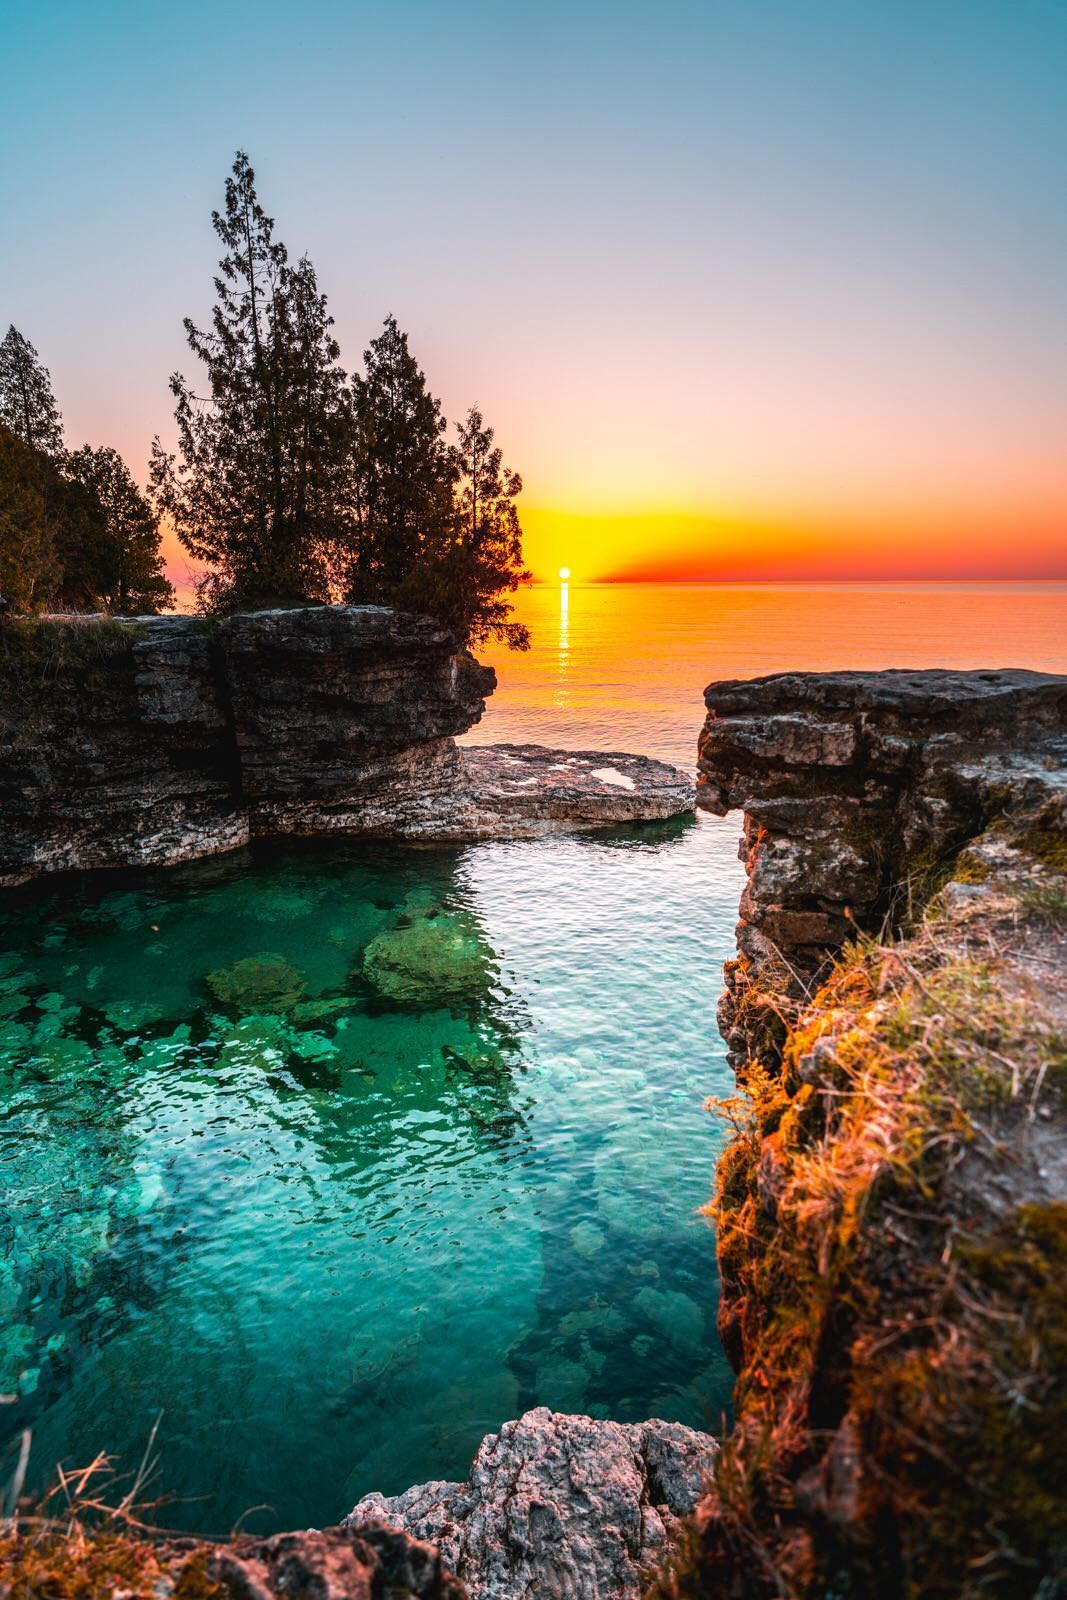 Nature Beautiful Scenery The Crystal Clear Water Of Lake Michigan At Cave Point Park At Sunrise 10 Nature Pictures Beautiful Landscapes Nature Photography